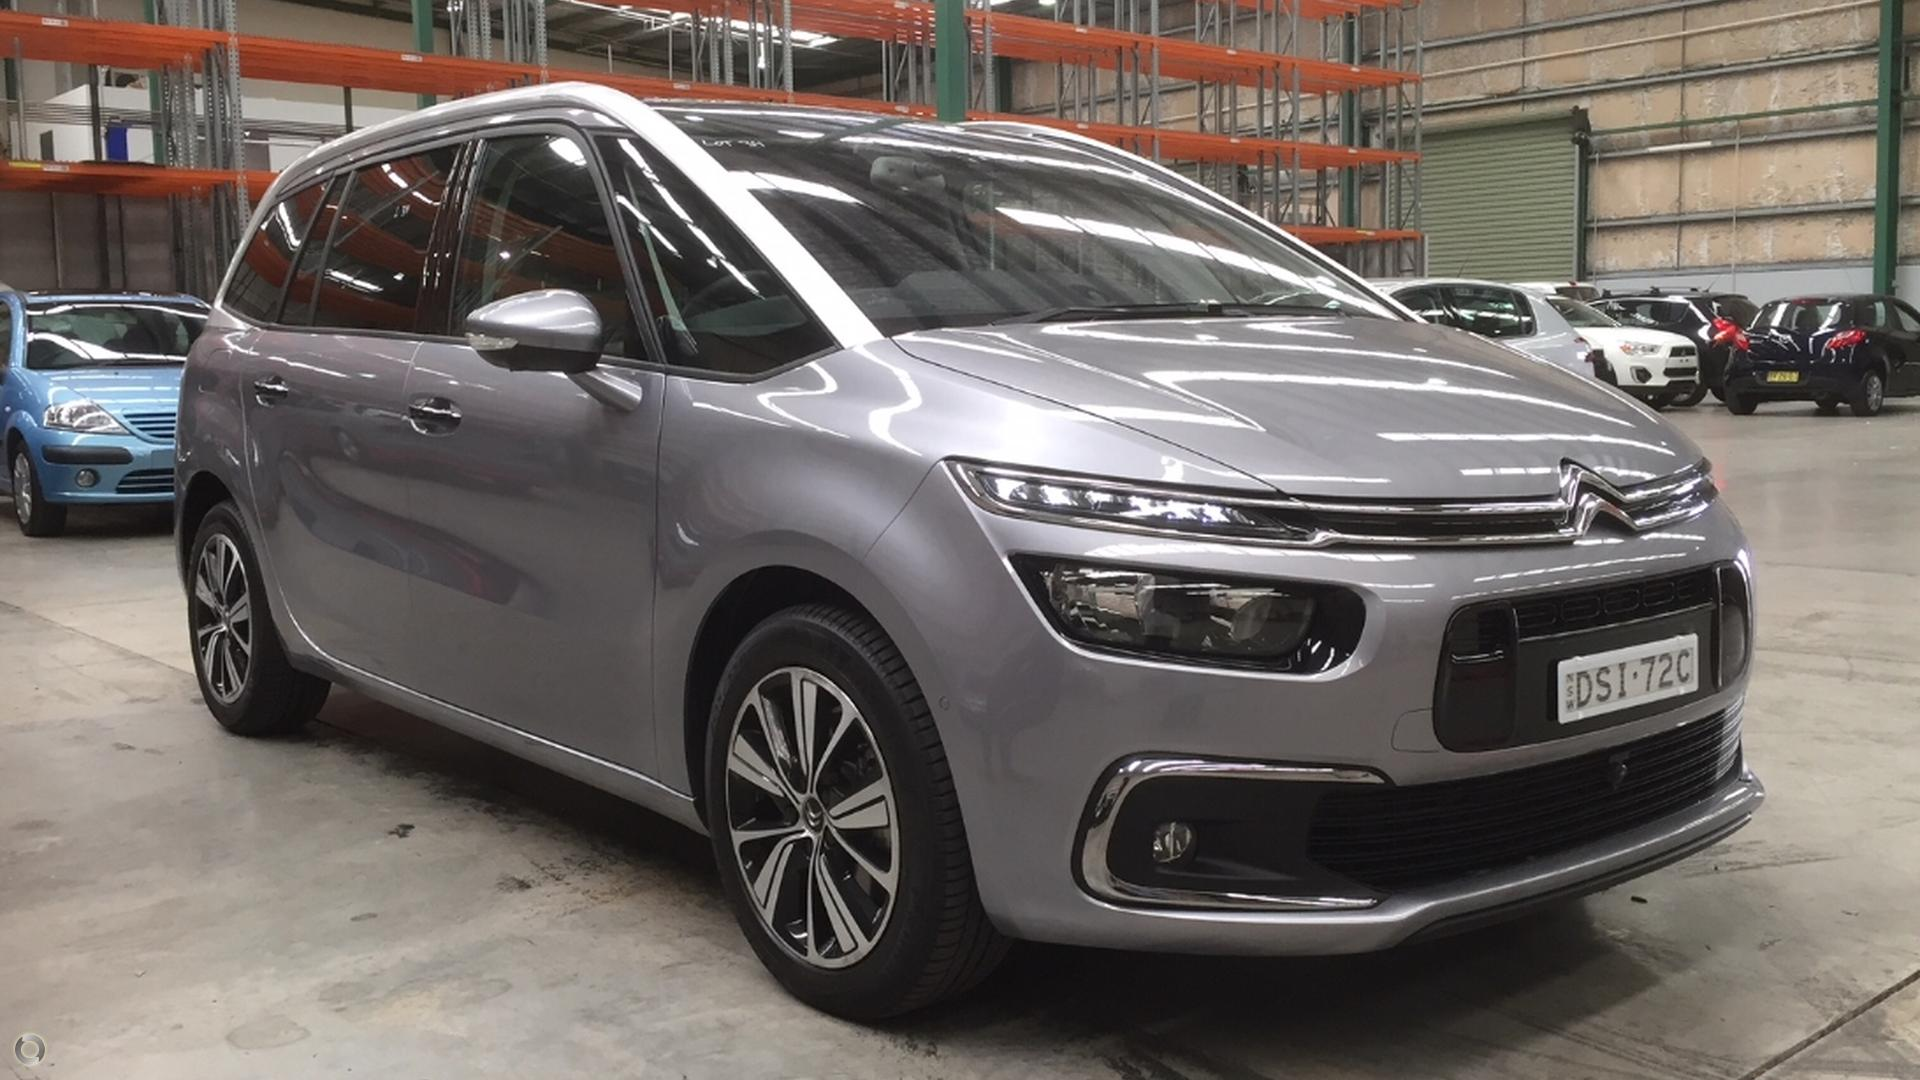 2017 Citroen Grand C4 Picasso Exclusive B7